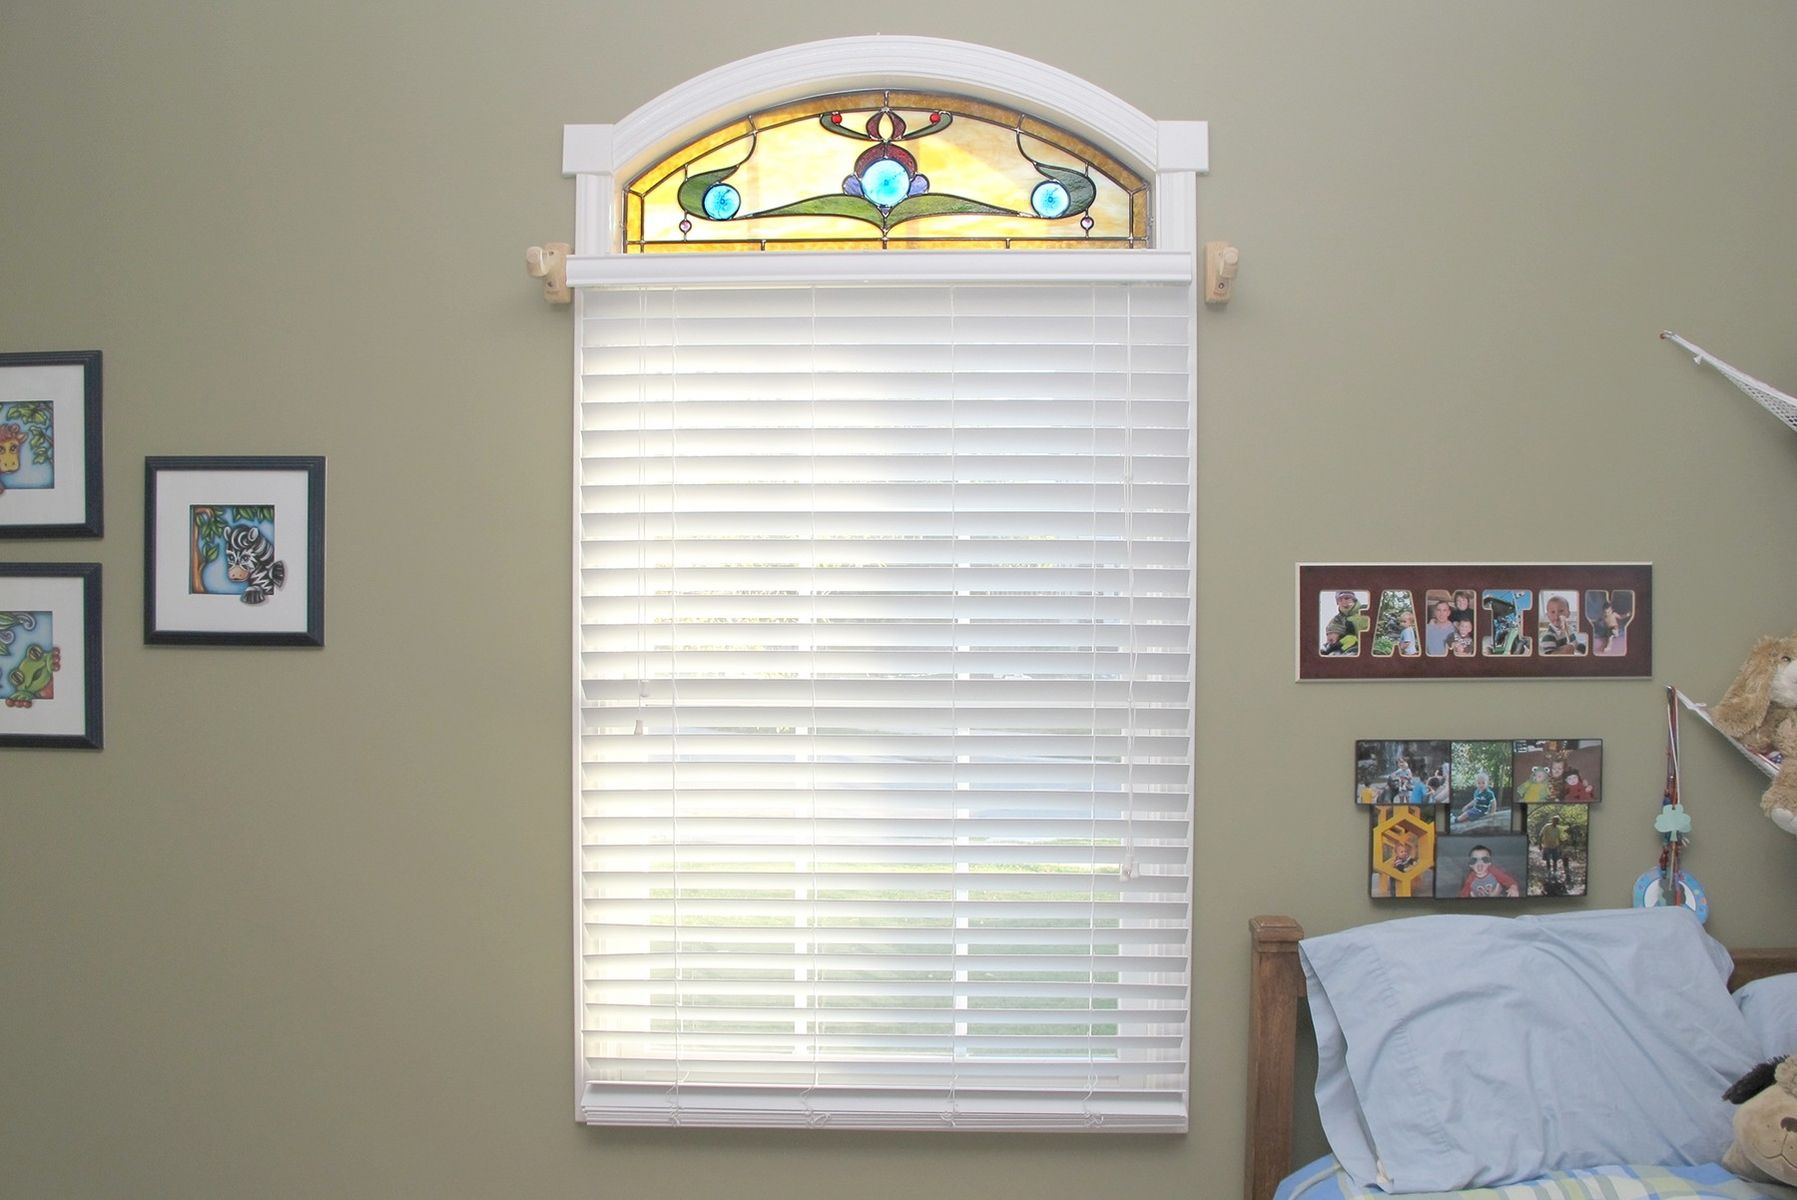 Handmade Arched Stained Glass Bedroom Window By Painted